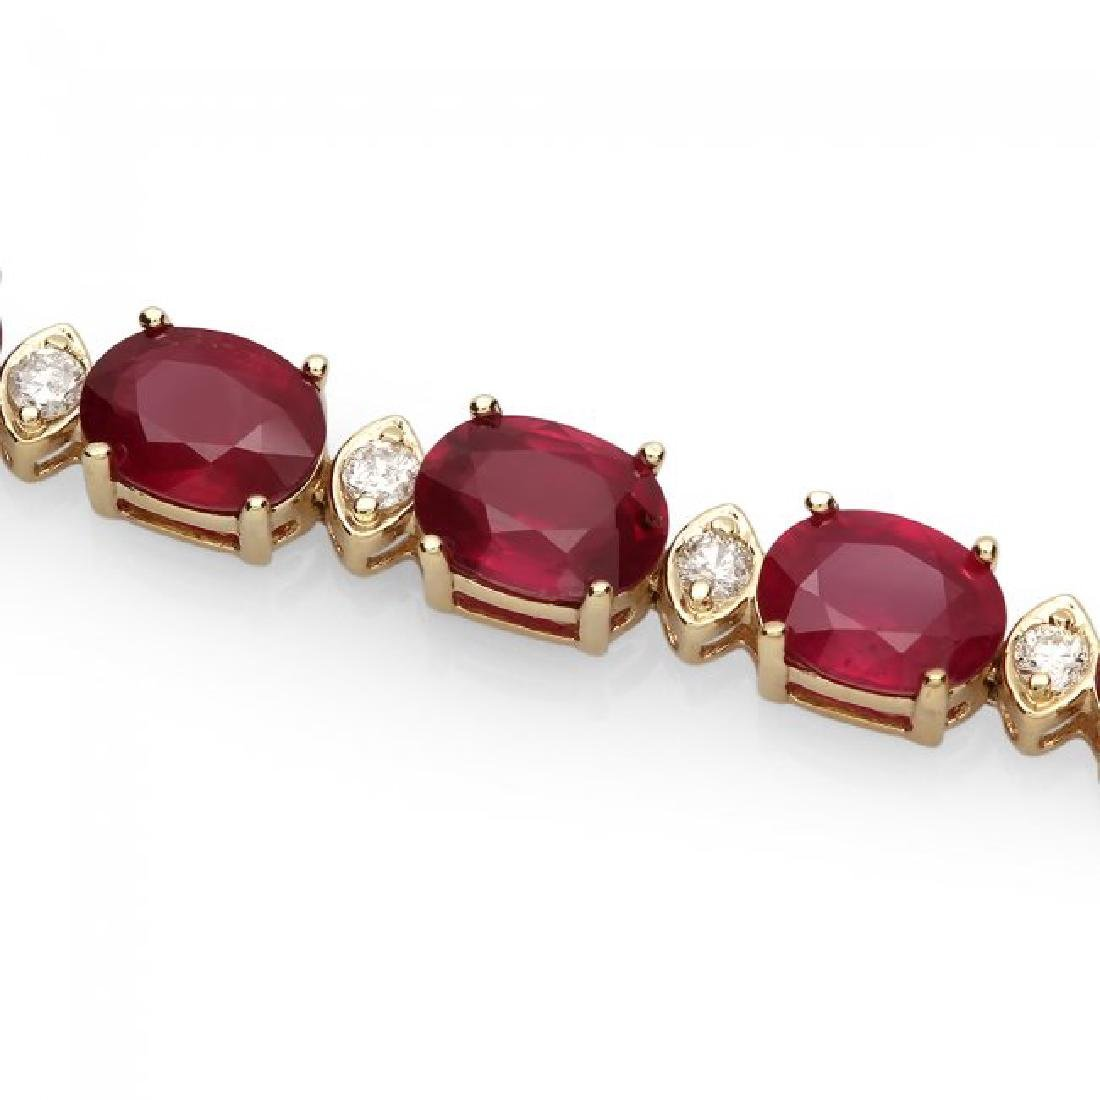 14k Gold 27.50ct Ruby 0.90ct Diamond Bracelet